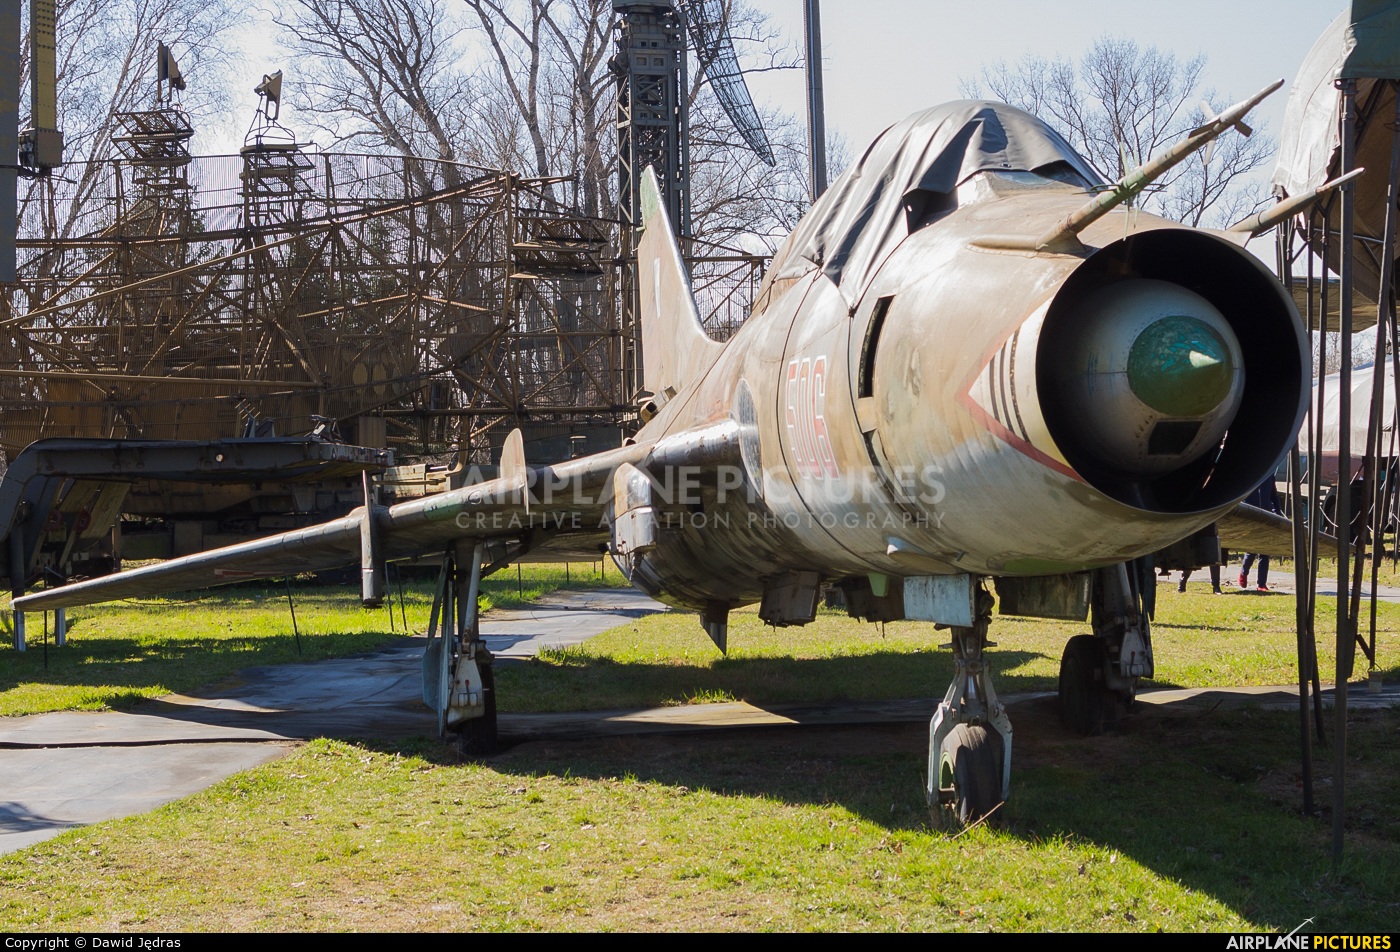 Poland - Air Force 506 aircraft at Warsaw - Fort Czerniakowski Museum